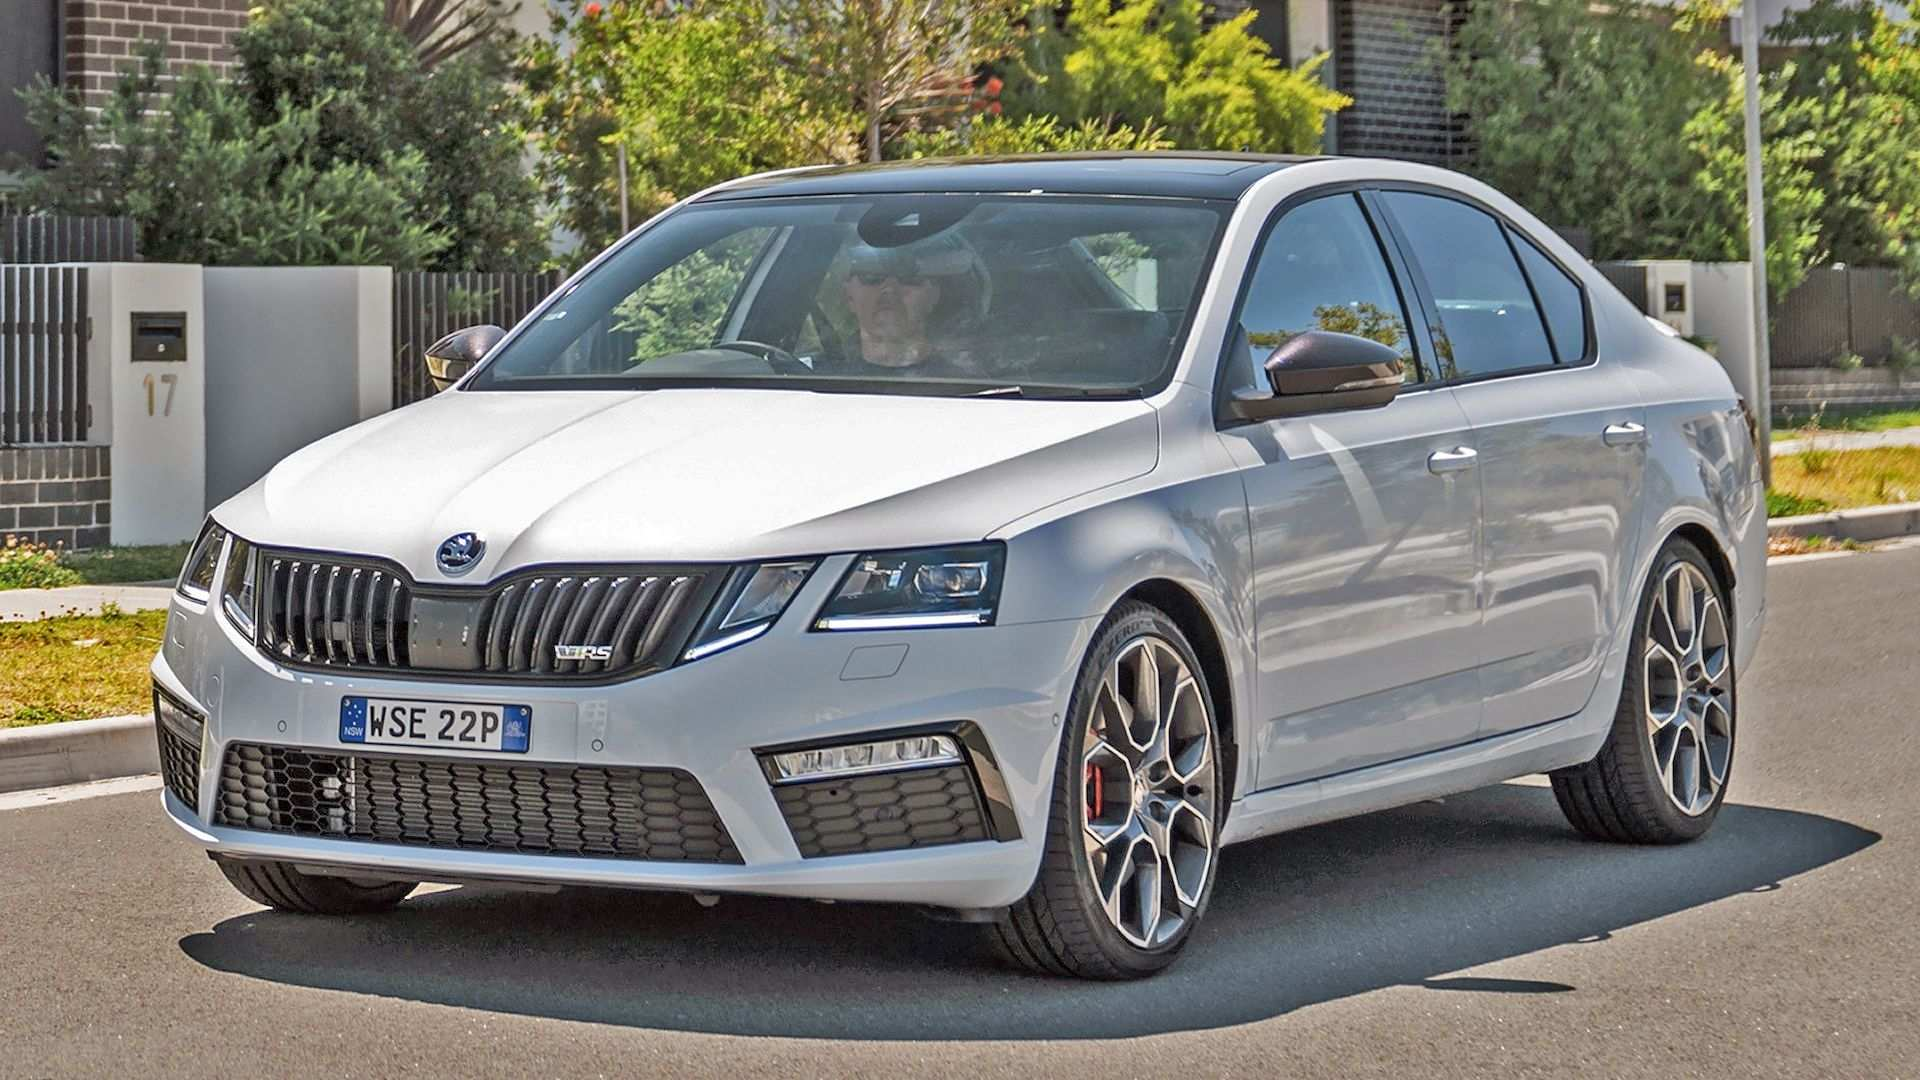 71 New 2019 Skoda Octavia Exterior And Interior